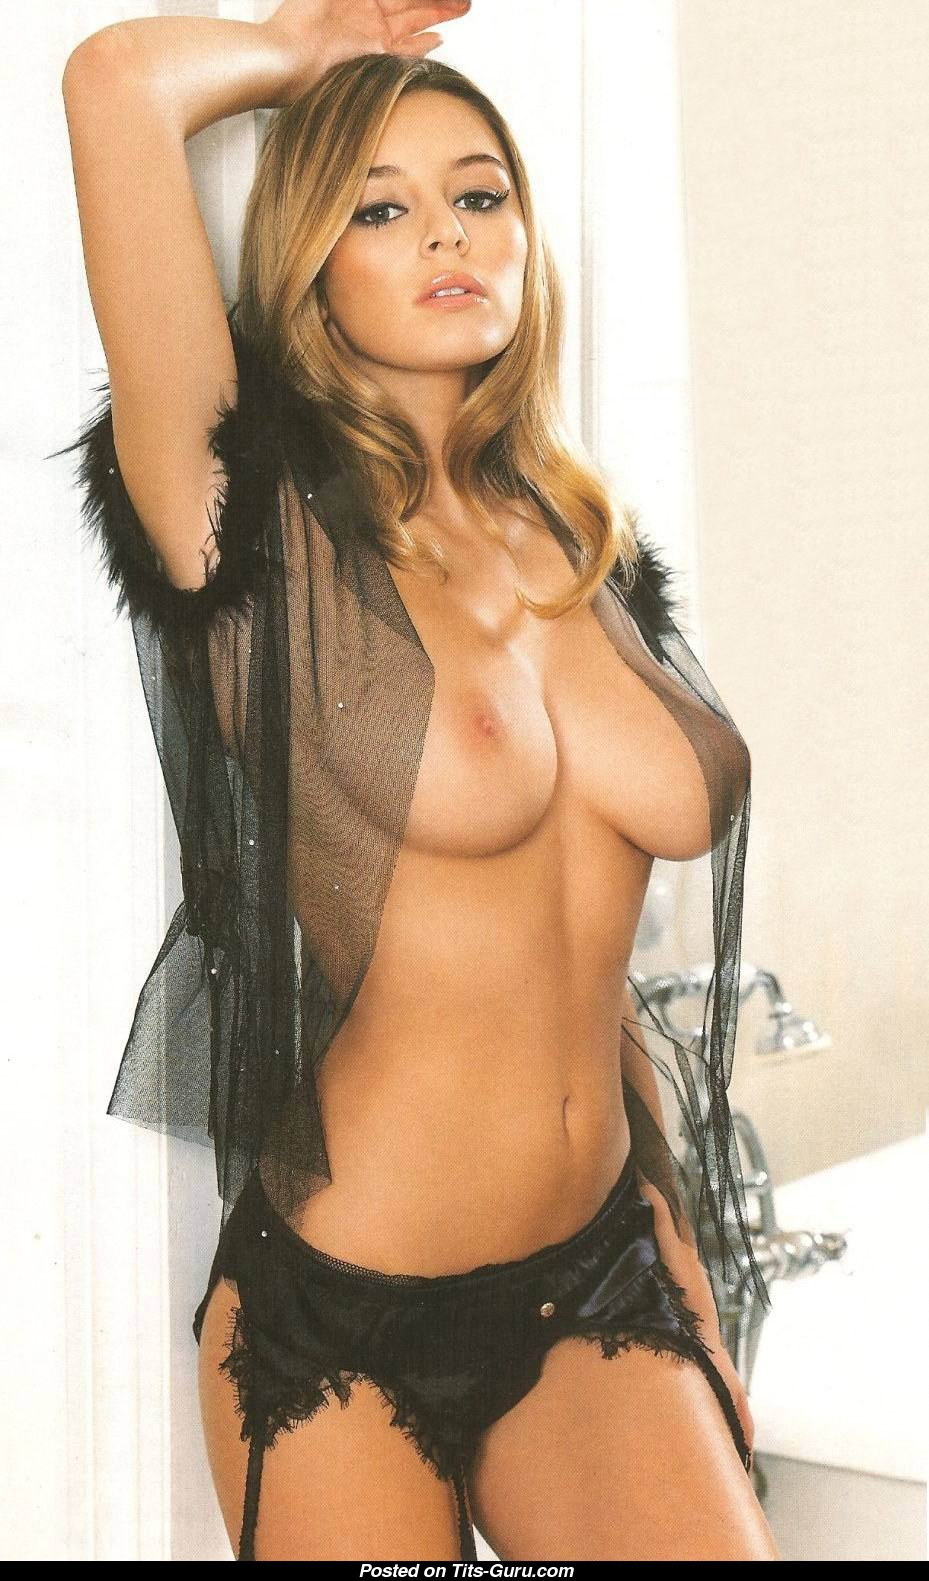 Naked pictures of keeley hazell